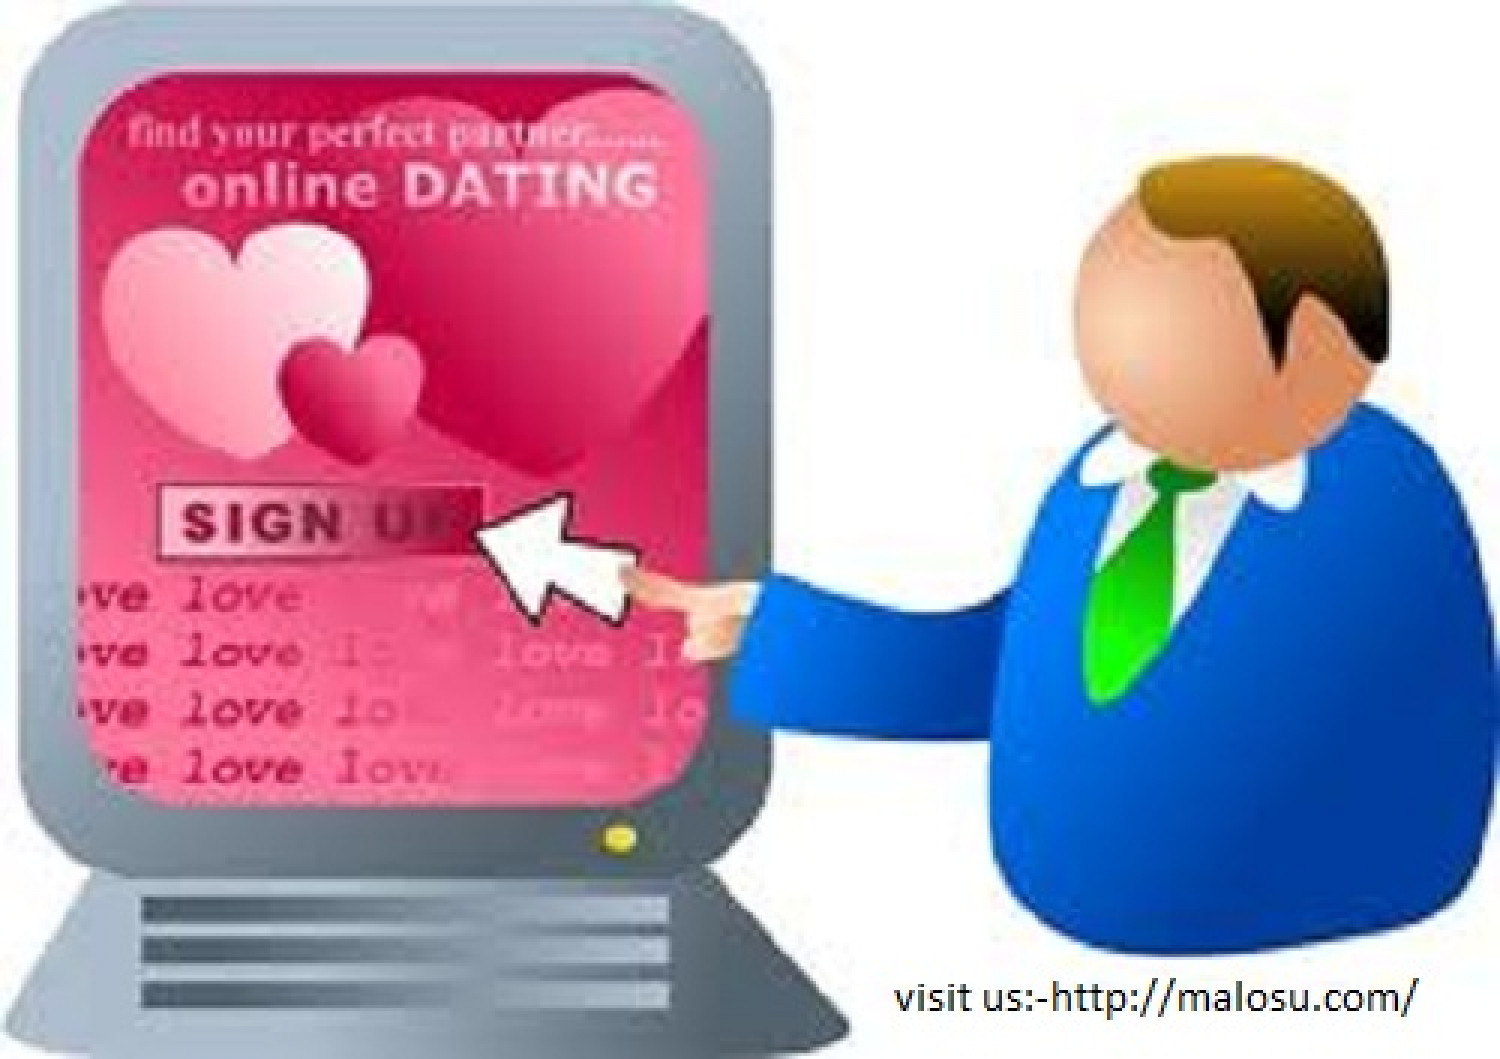 Online dating service